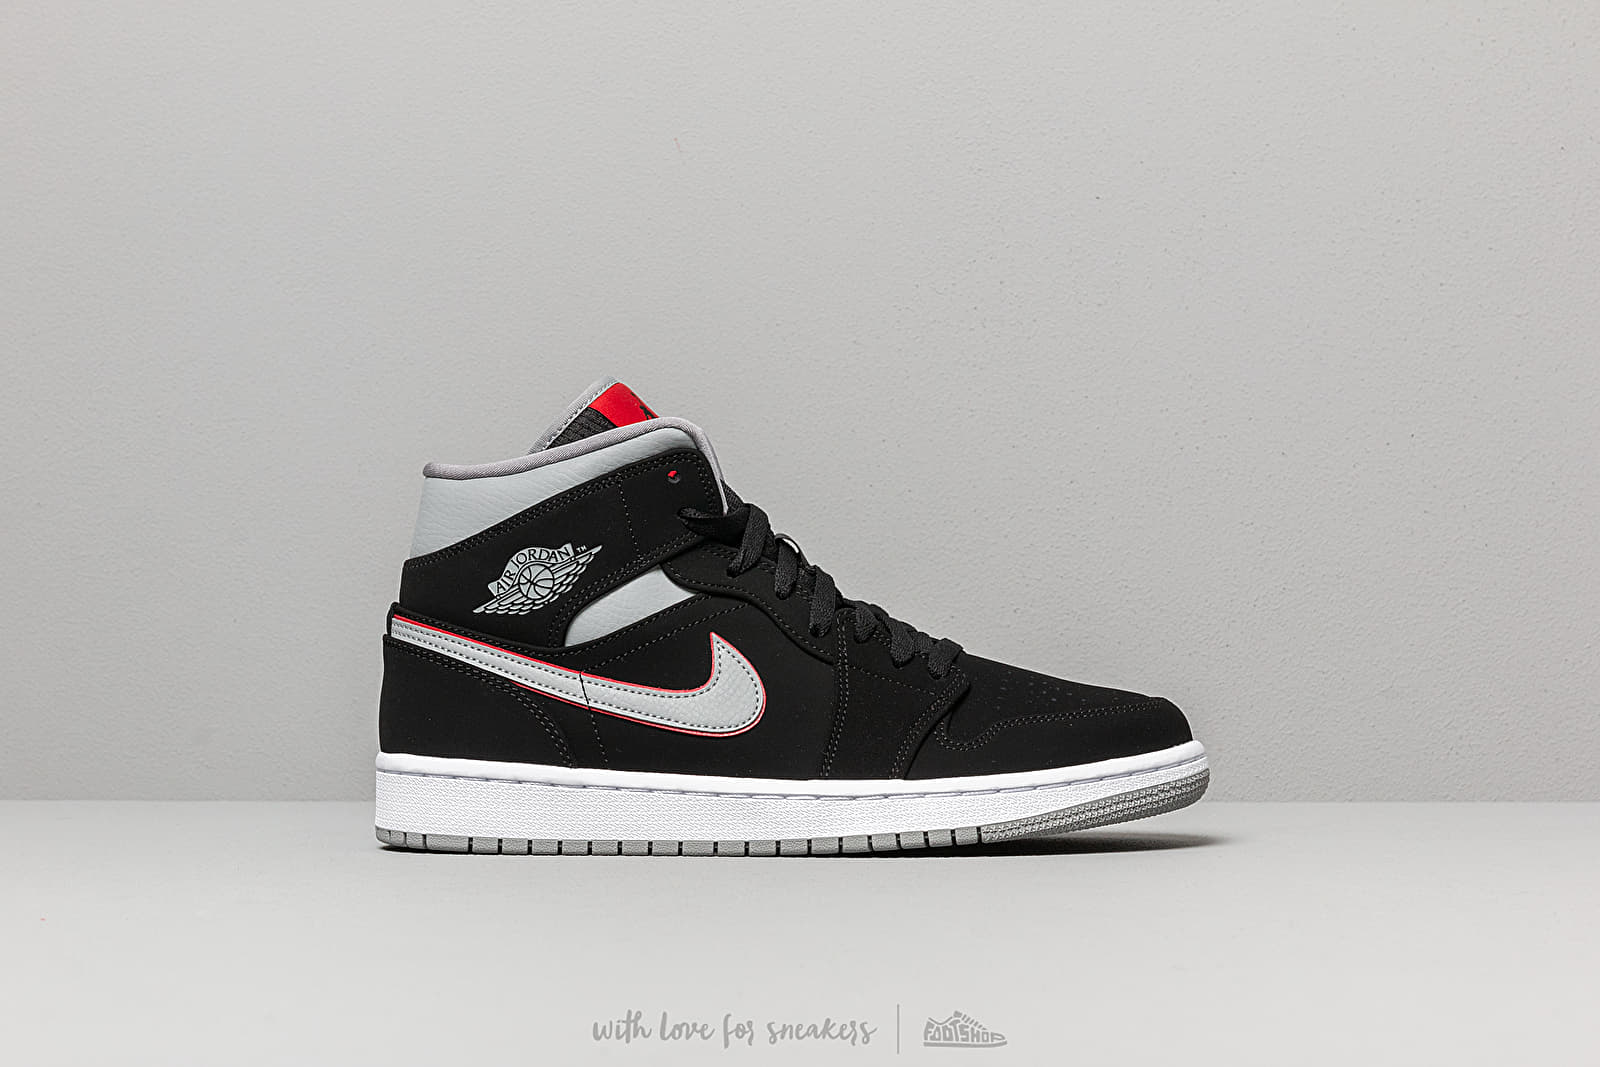 new style 3605a b5d37 Air Jordan 1 Mid Black/ Particle Grey-White-Gym Red at a great